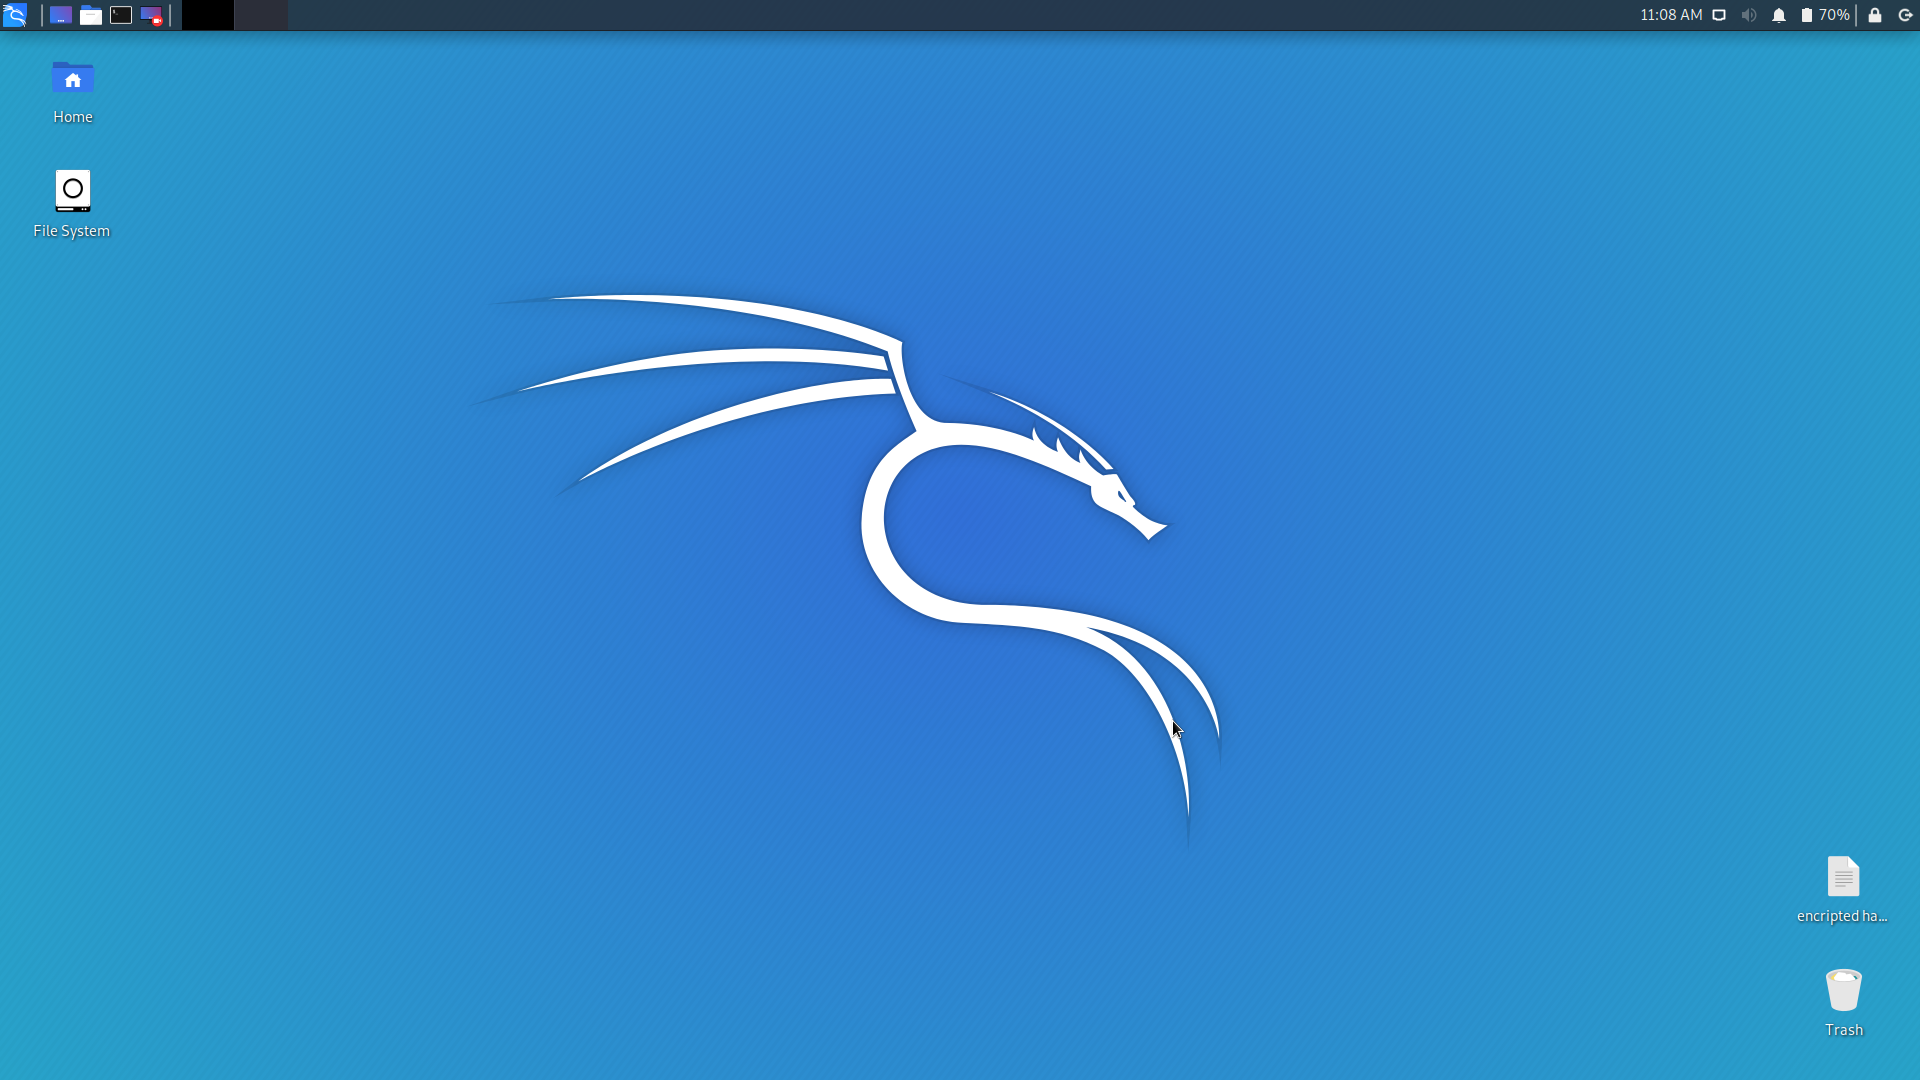 Kali Linux 2020 1 Root Password Setup Show Me Hacker Cyber Security News Medium